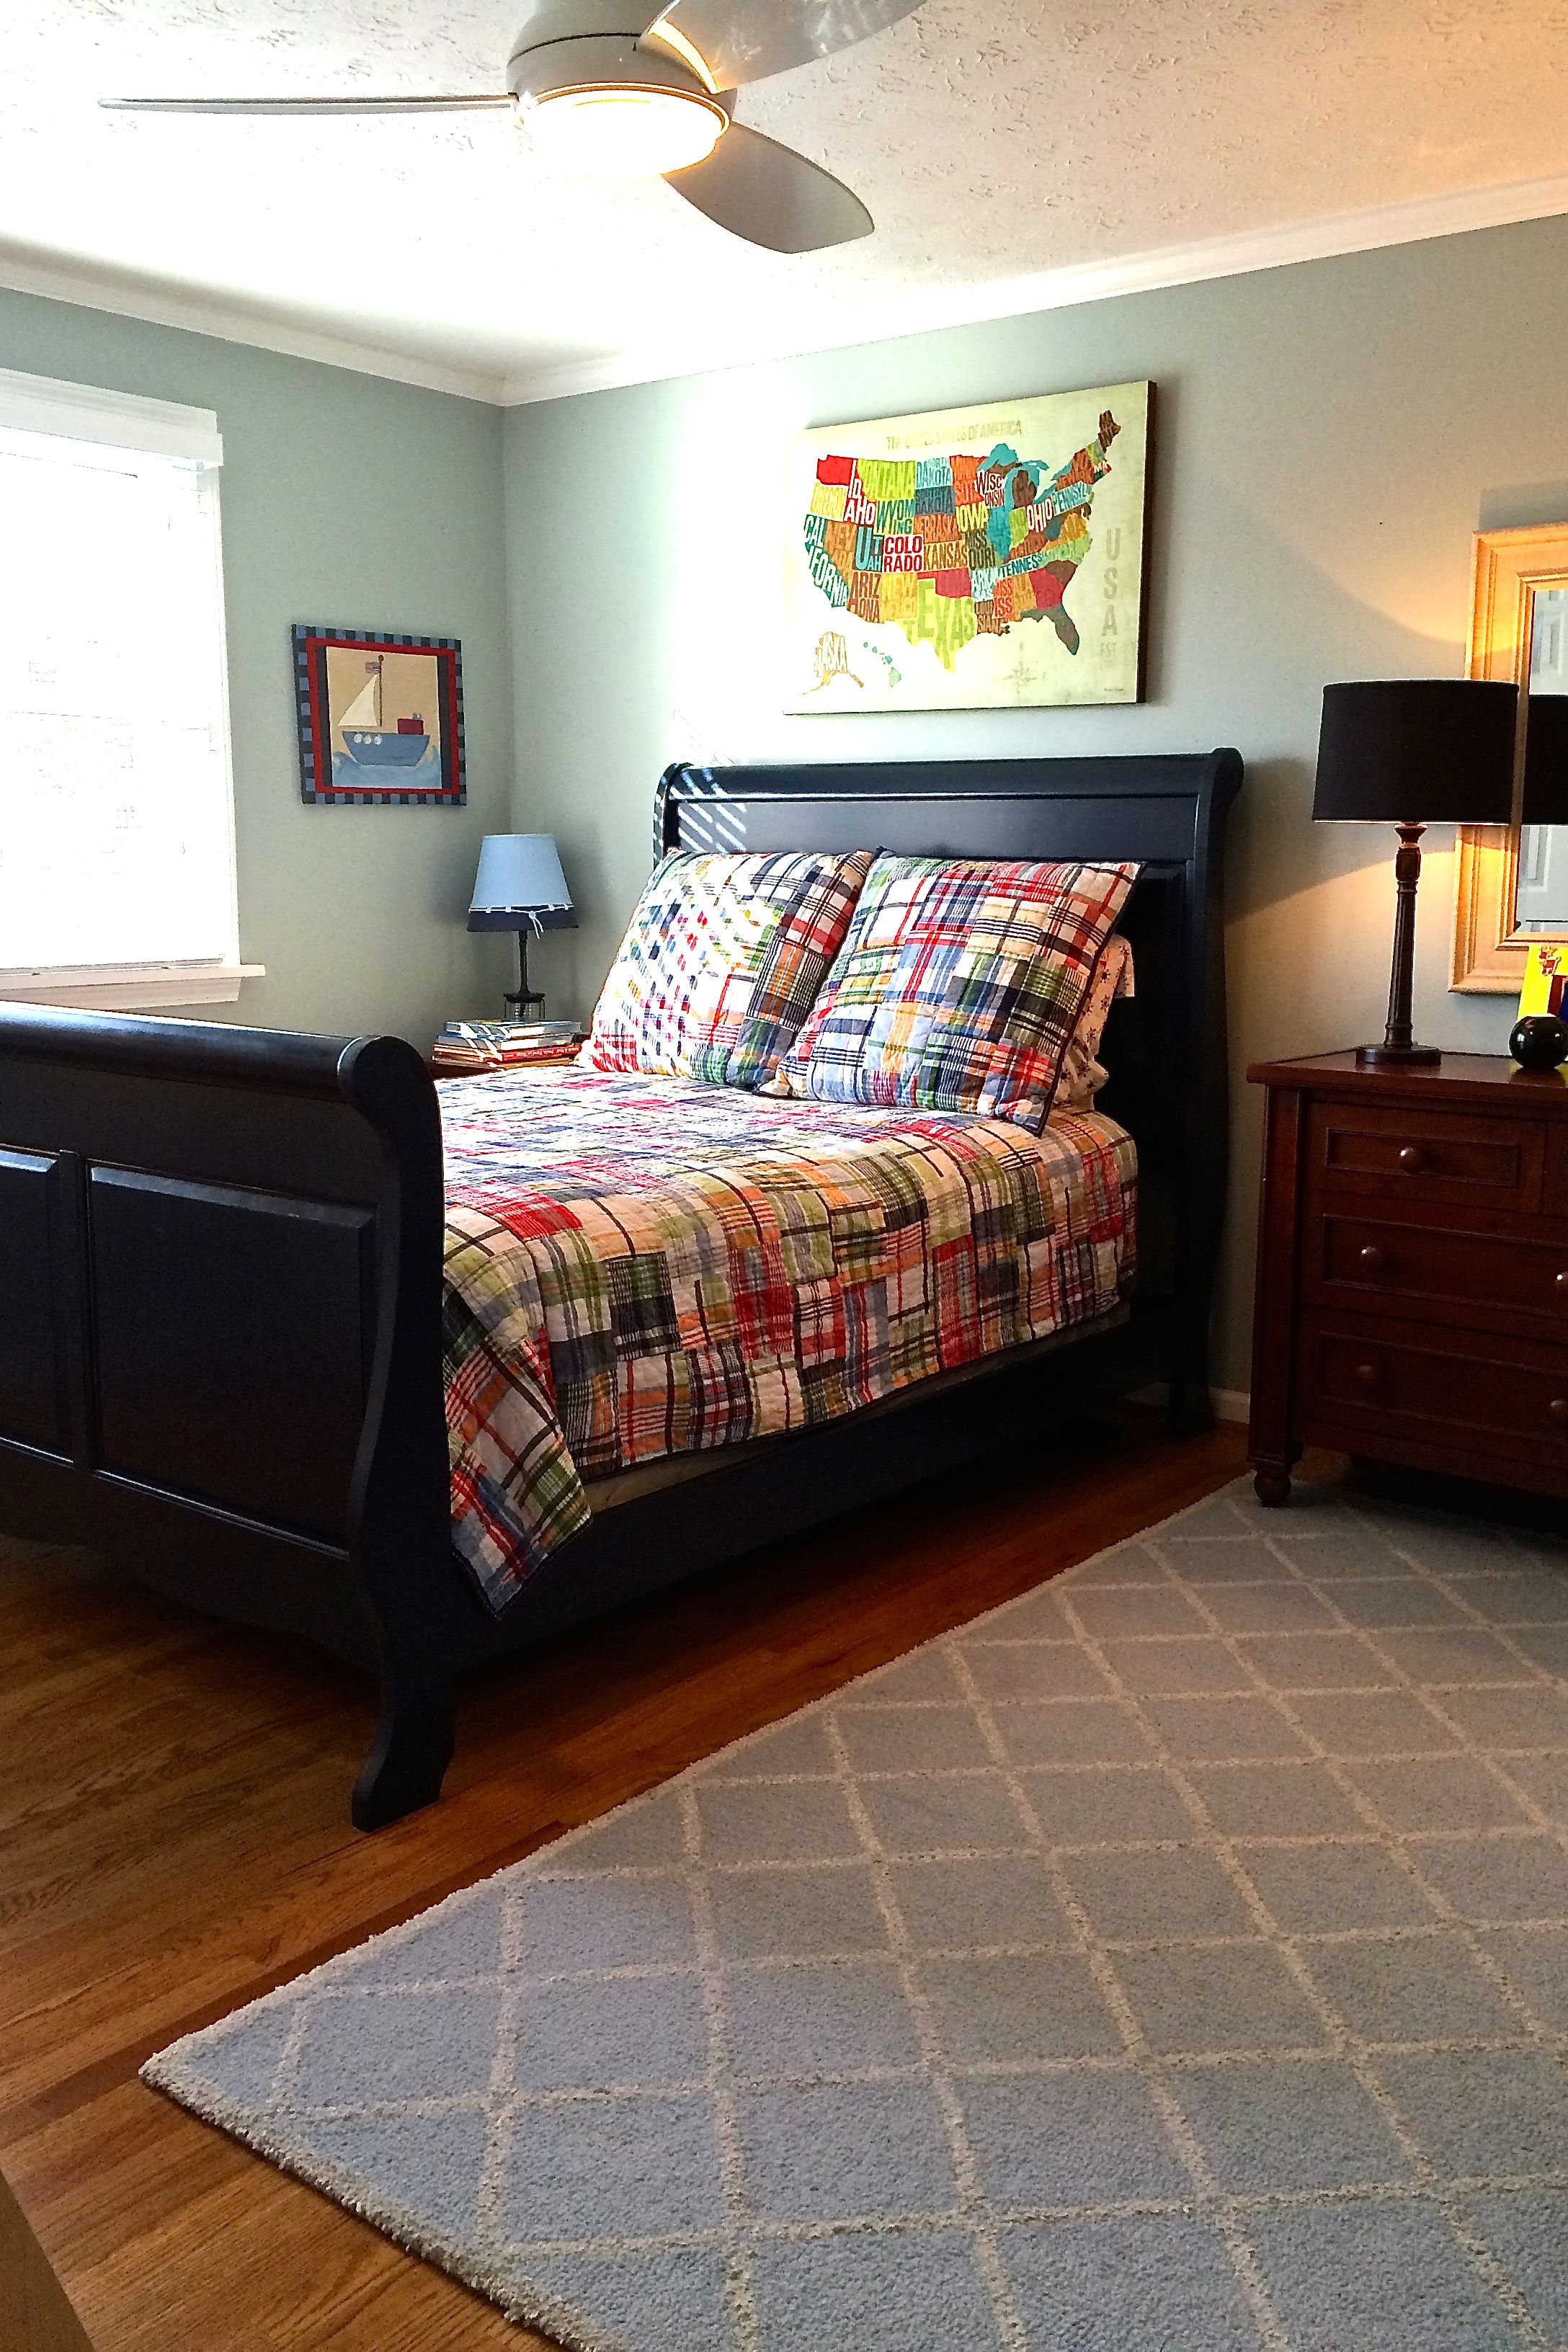 Blue Bedroom Furniture: A Navy Blue Sleigh Bed, Big Boy Furnishings And Bedding